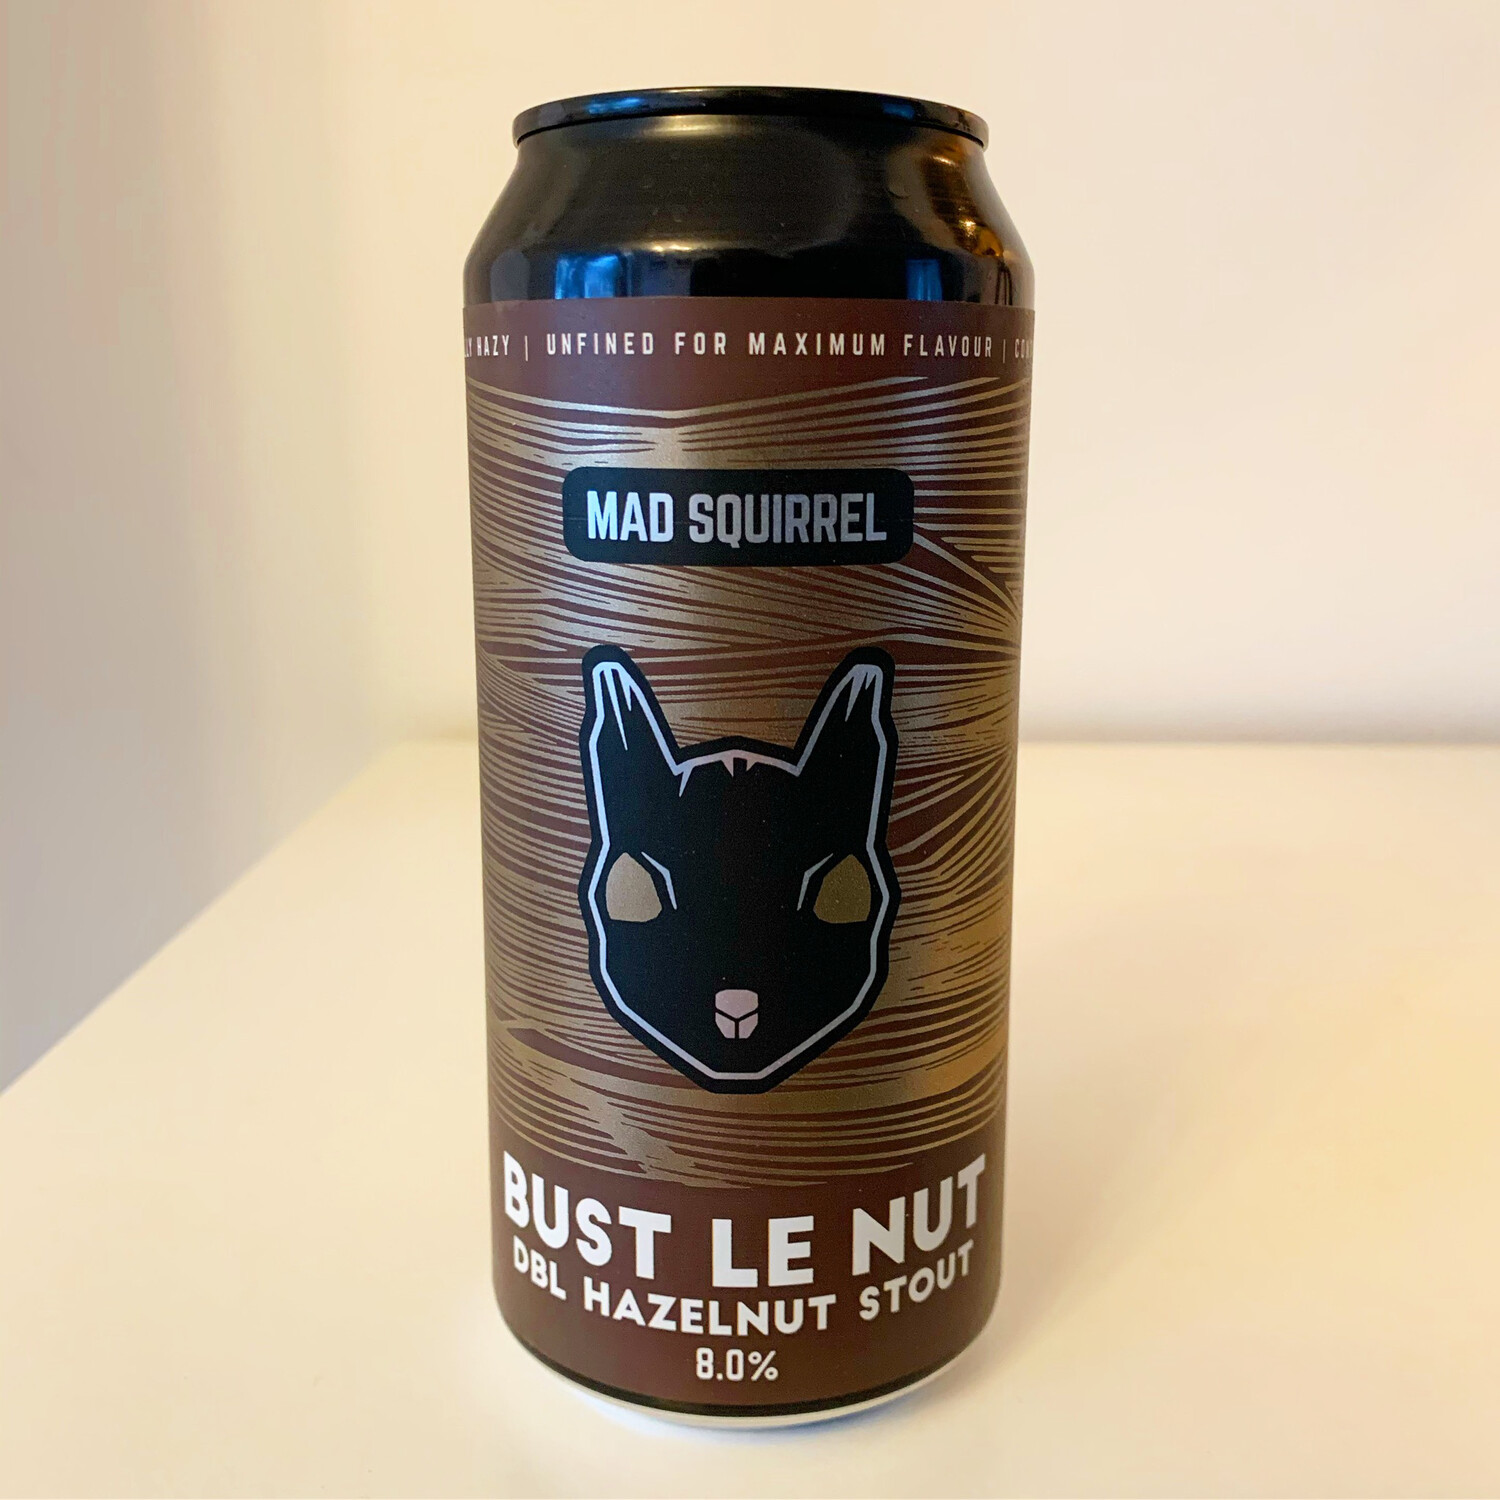 NEW Mad Squirrel 'Bust Le Nut' Double Hazelnut Stout 440ml - 8%